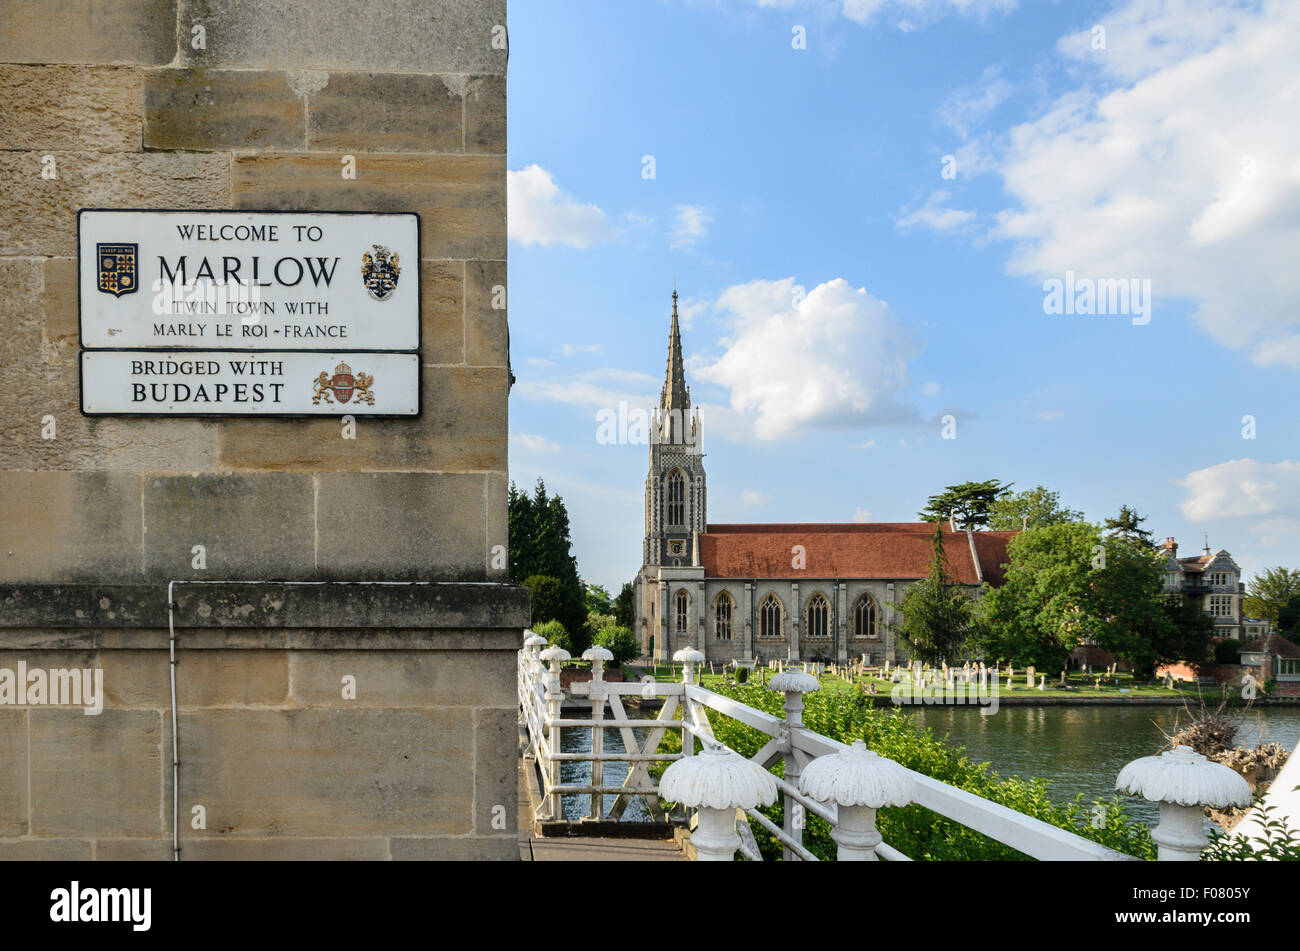 The Bridge over the River Thames at Marlow and All Saints Church, Marlow,Buckinghamshire, England, UK. - Stock Image